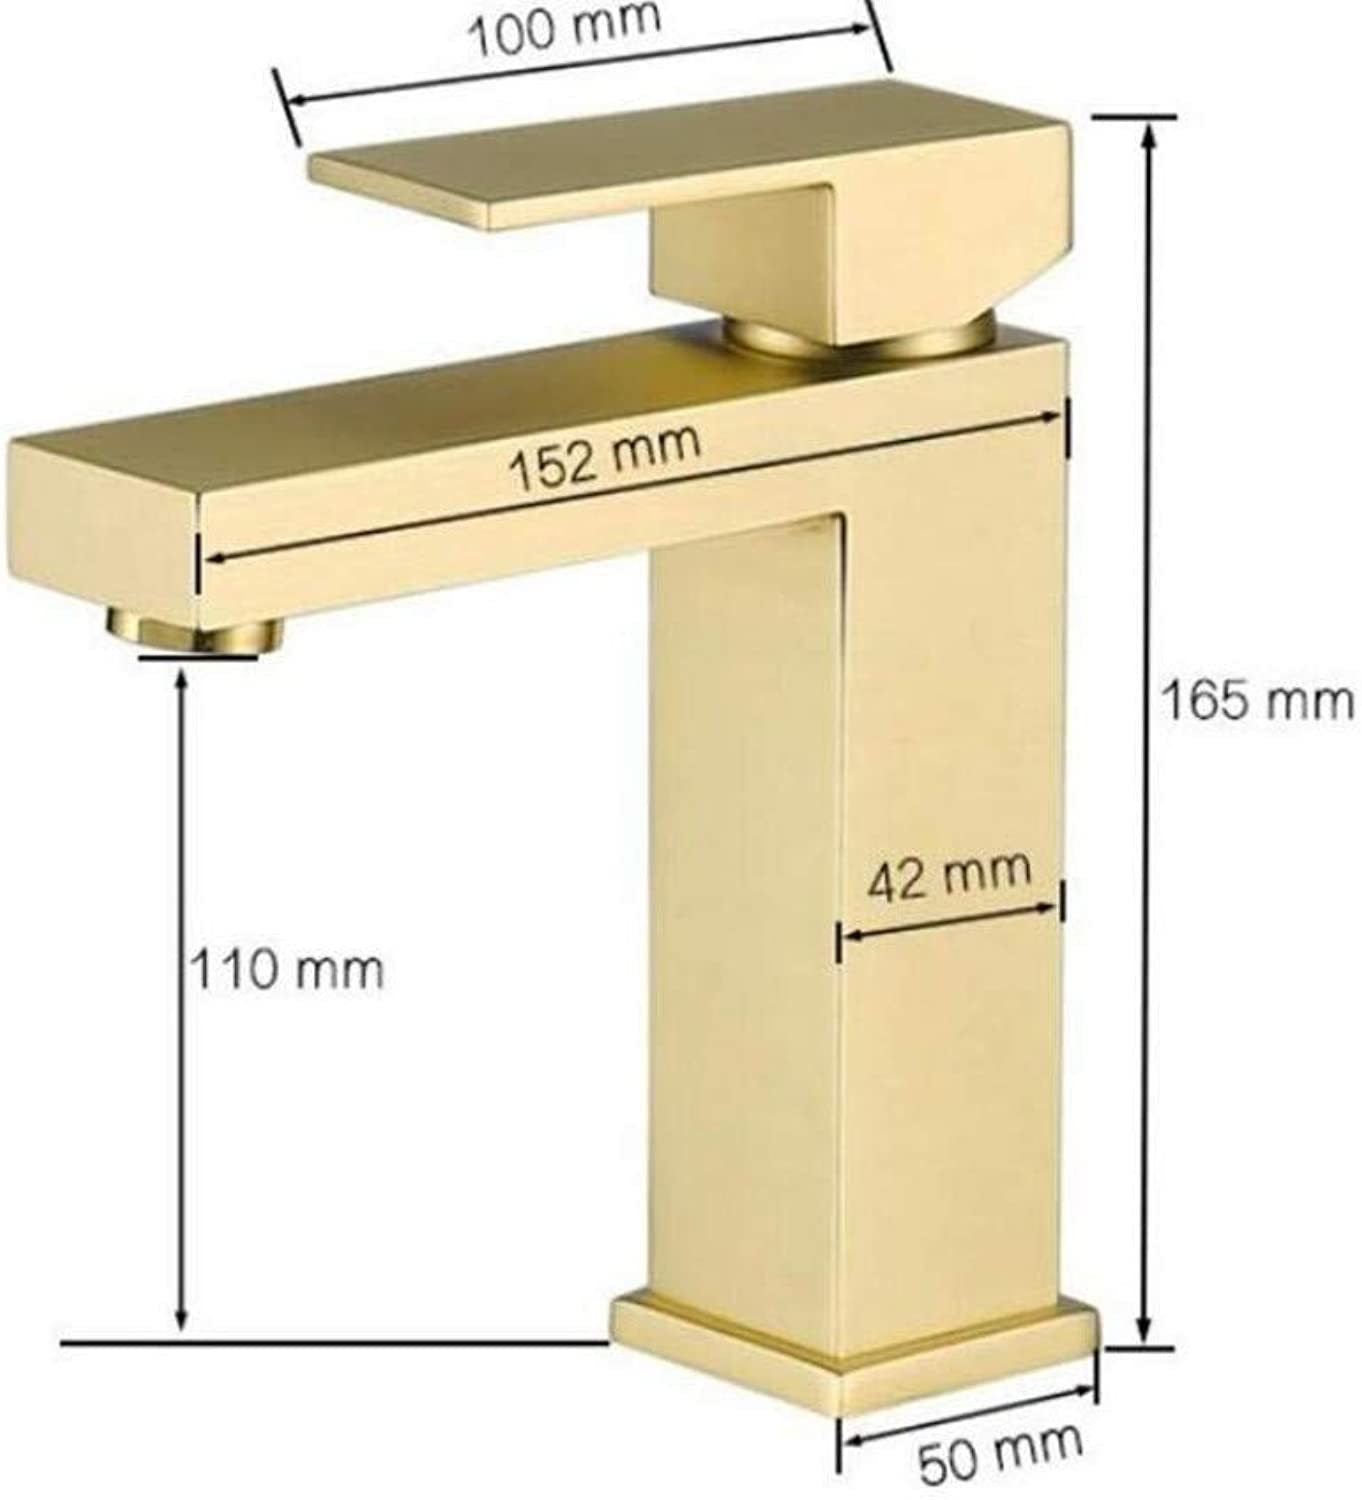 Taps Kitchen Sinkbrushed Square Bathroom Hot and Cold Faucet 100% Soild Brass High Quality Single Hole Basin